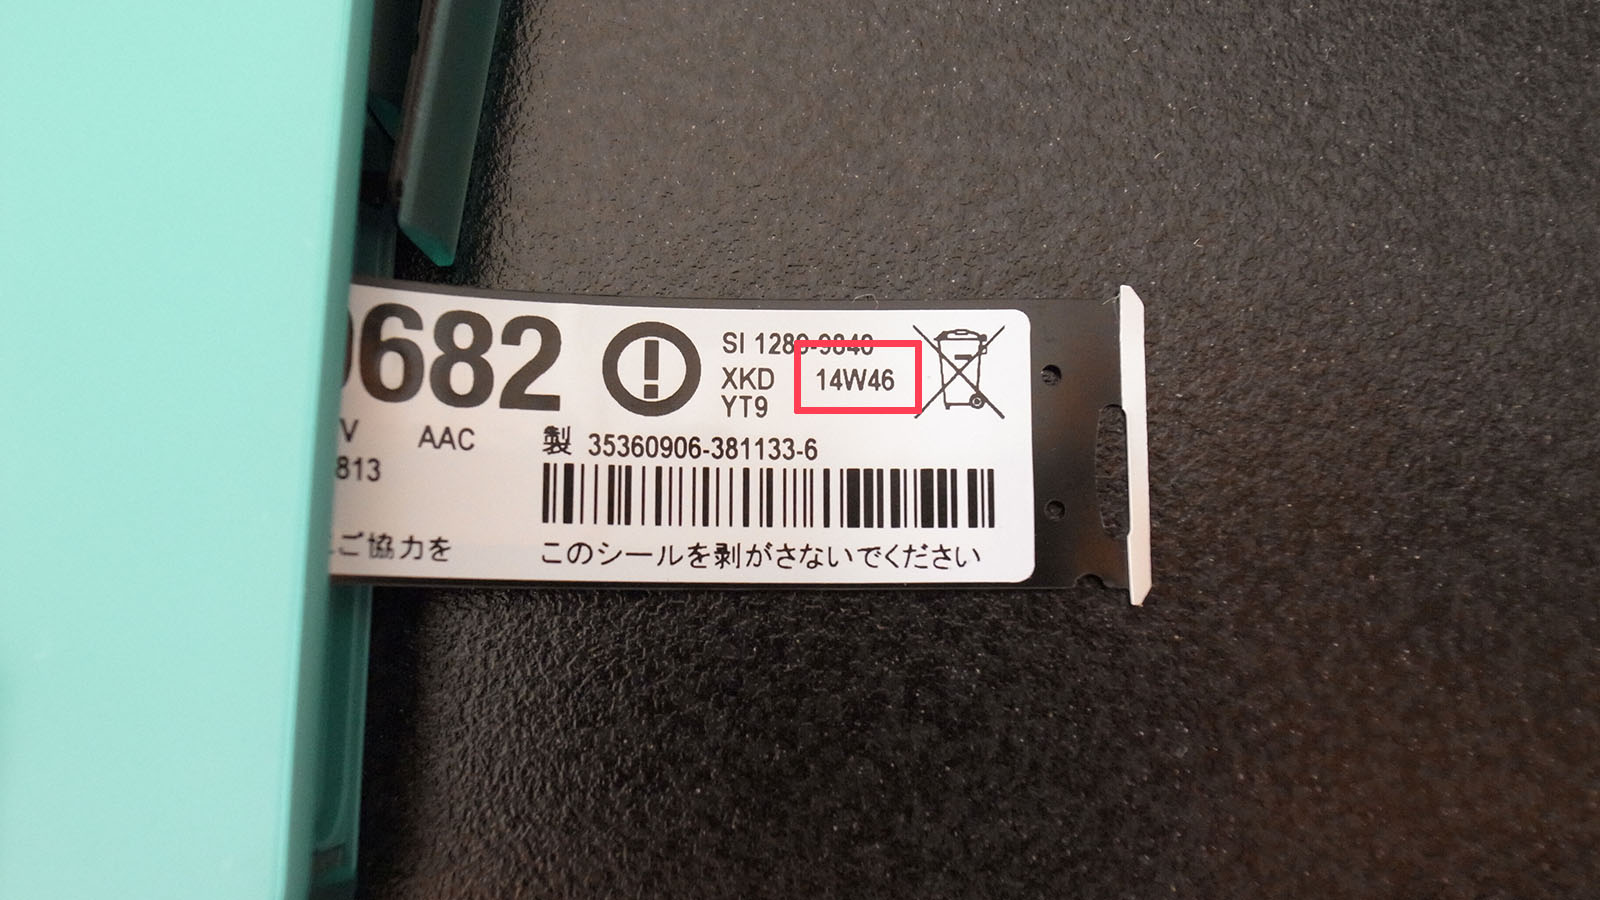 xperia z3 compact Production Week code